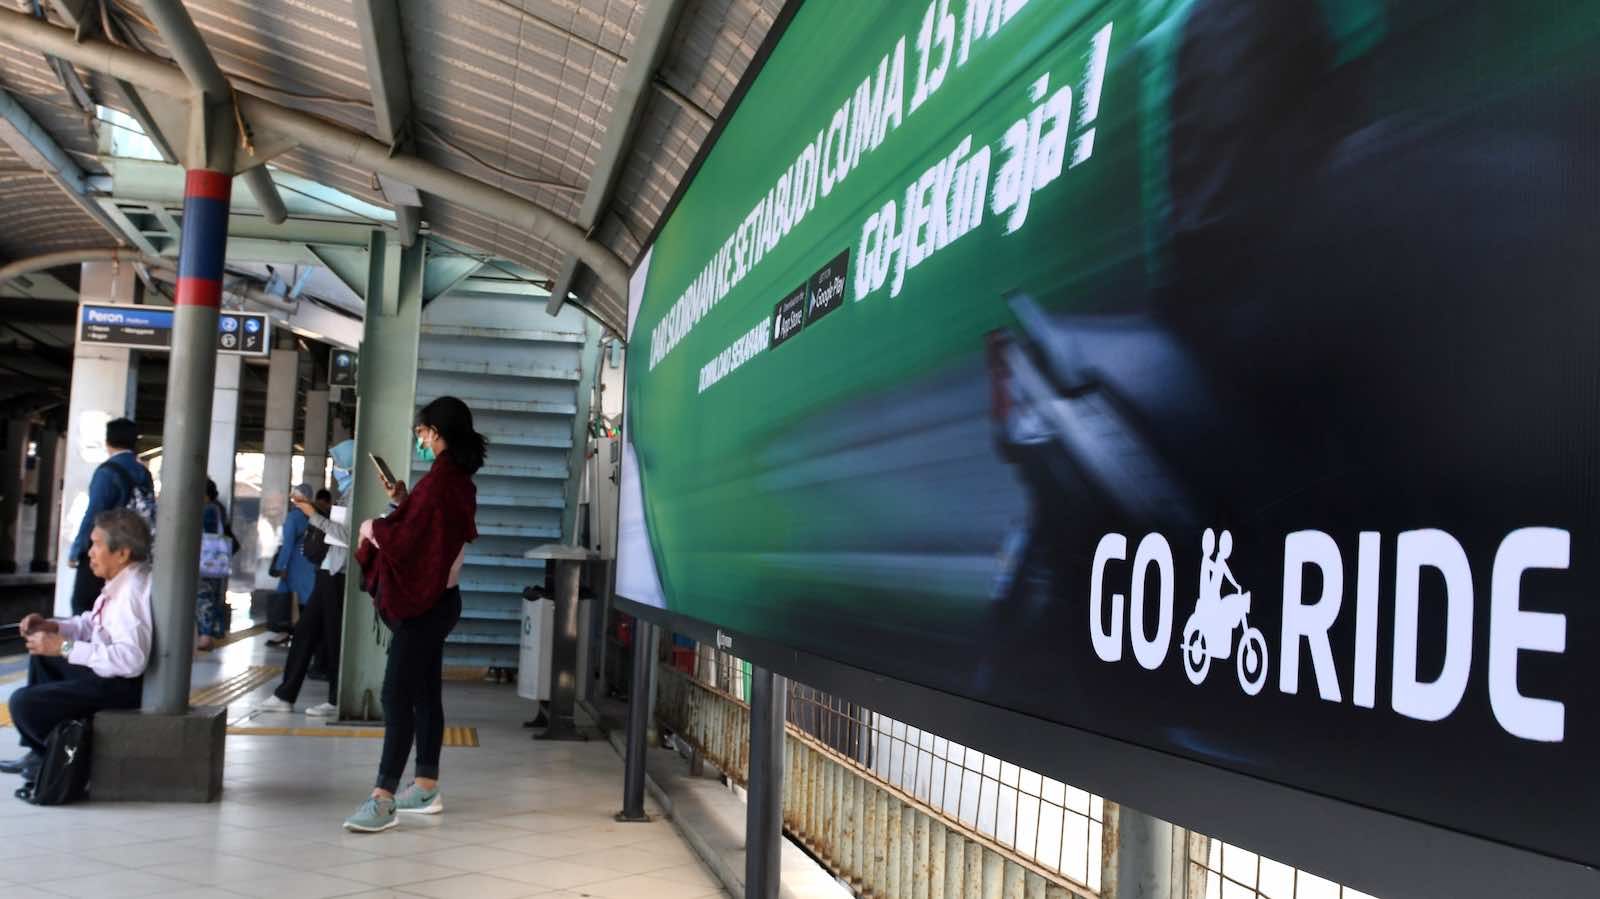 Advertising in Jakarta for courier and digital payment group Gojek, one of the biggest start-ups in Southeast Asia (Goh Chai Hin via Getty Images)